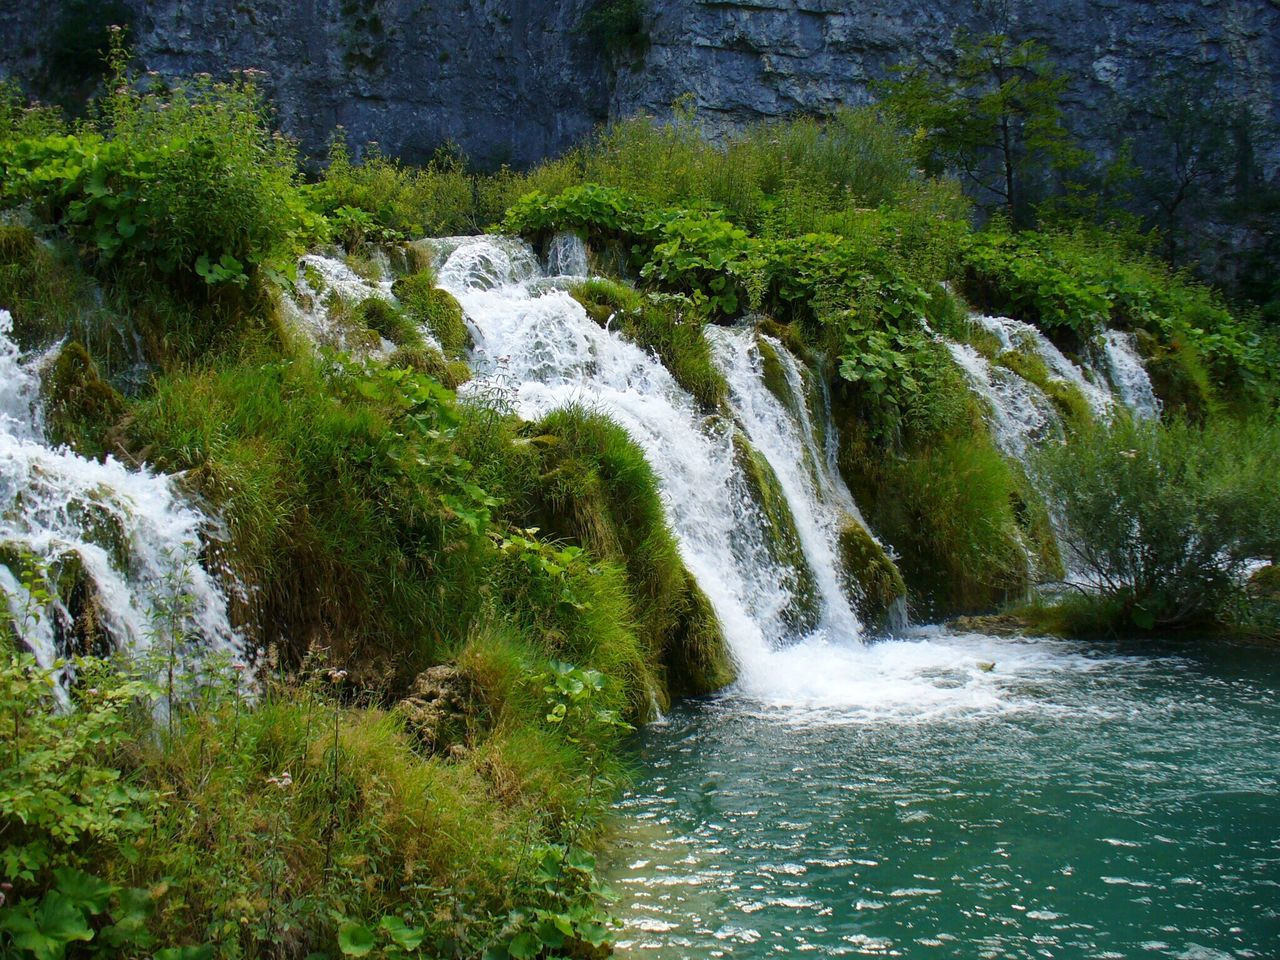 Water Nature Waterfall Beauty In Nature Scenics Forest Idyllic Plitvice National Park Plitvice Lakes National Park Croatia Lake Grass Moss Motion Flowing Water Tranquility Travel Destinations Outdoors Rock - Object No People Flowing Tree Power In Nature Tranquil Scene Vacations